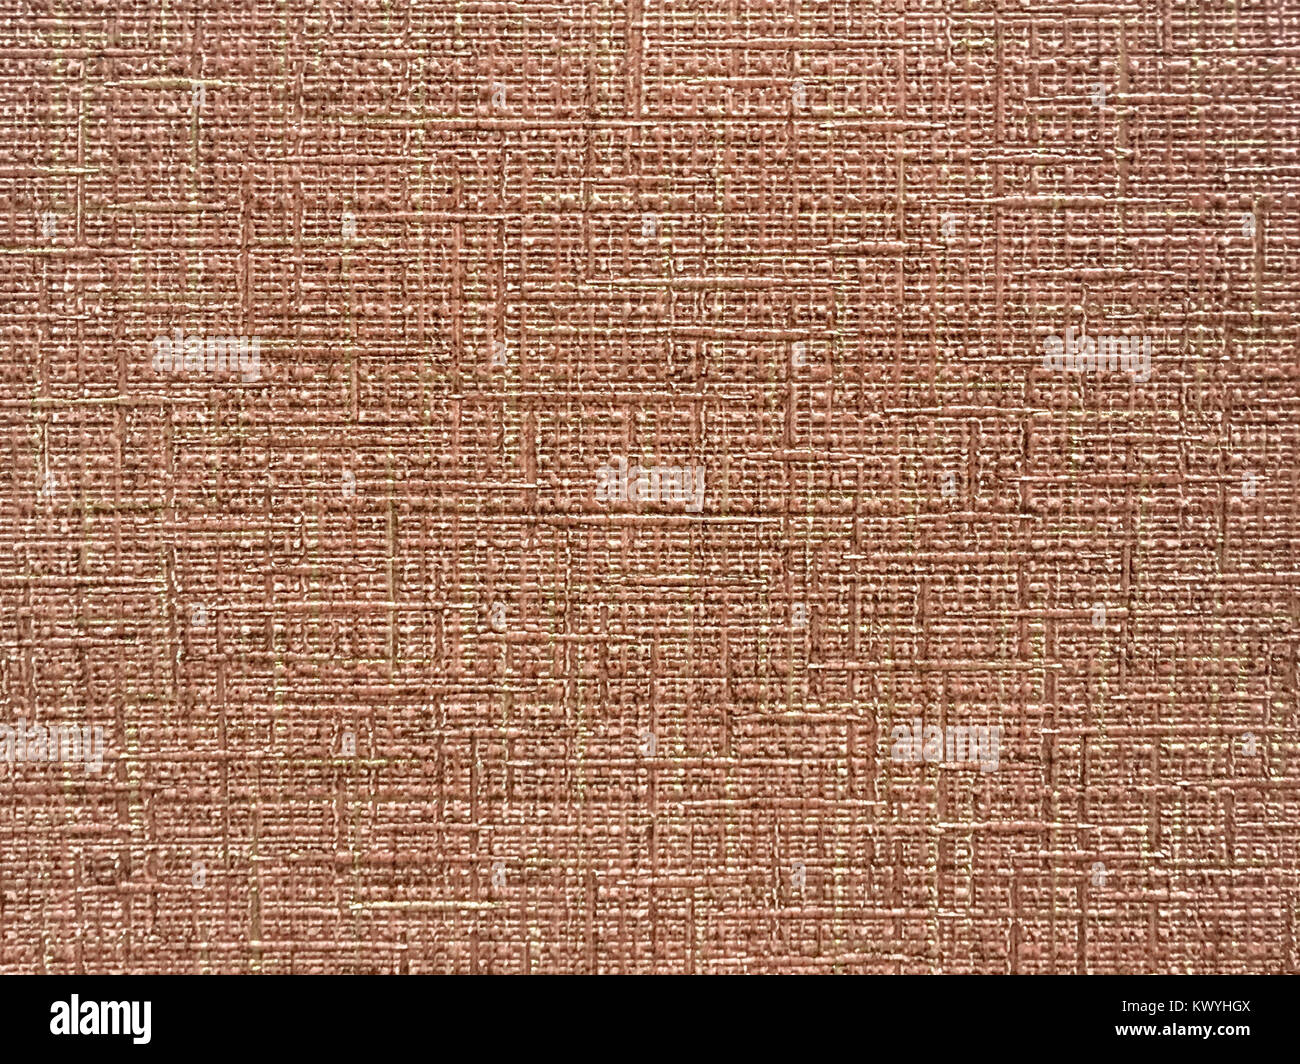 Texture Of Light Brown Wallpaper With A Stripped Pattern Paper Surface Structure Close